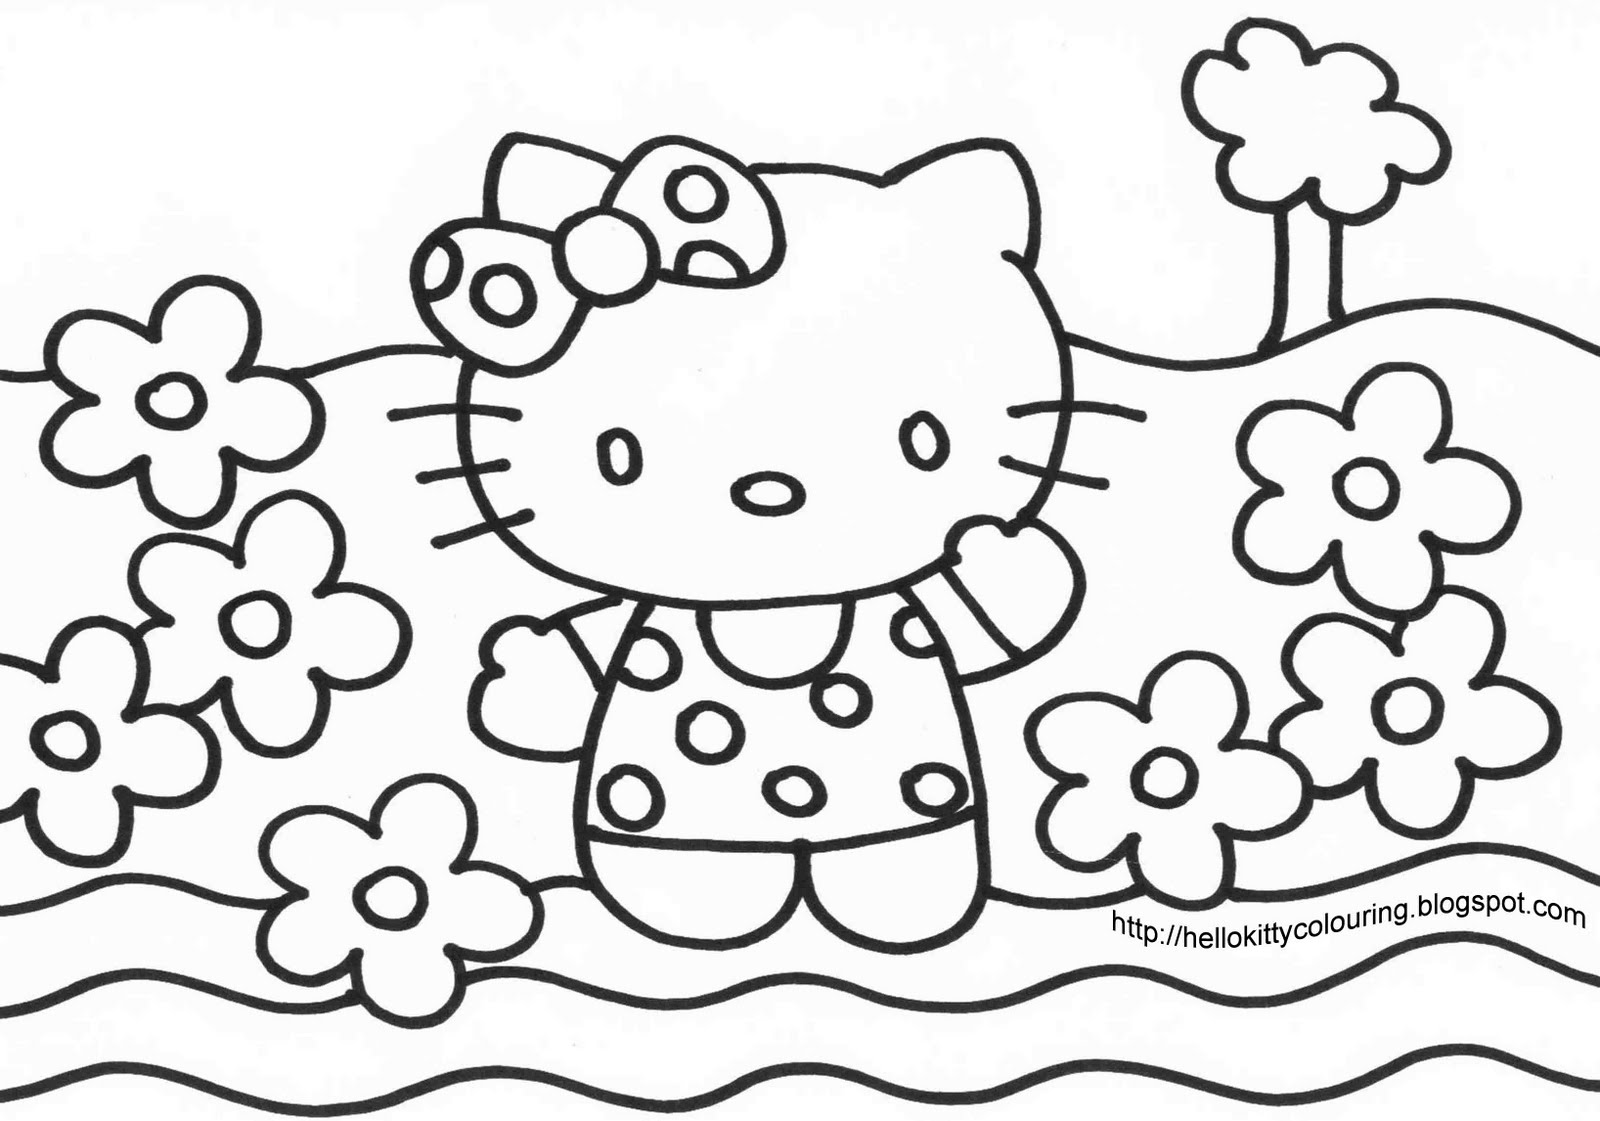 All Hello Kitty Coloring Pages